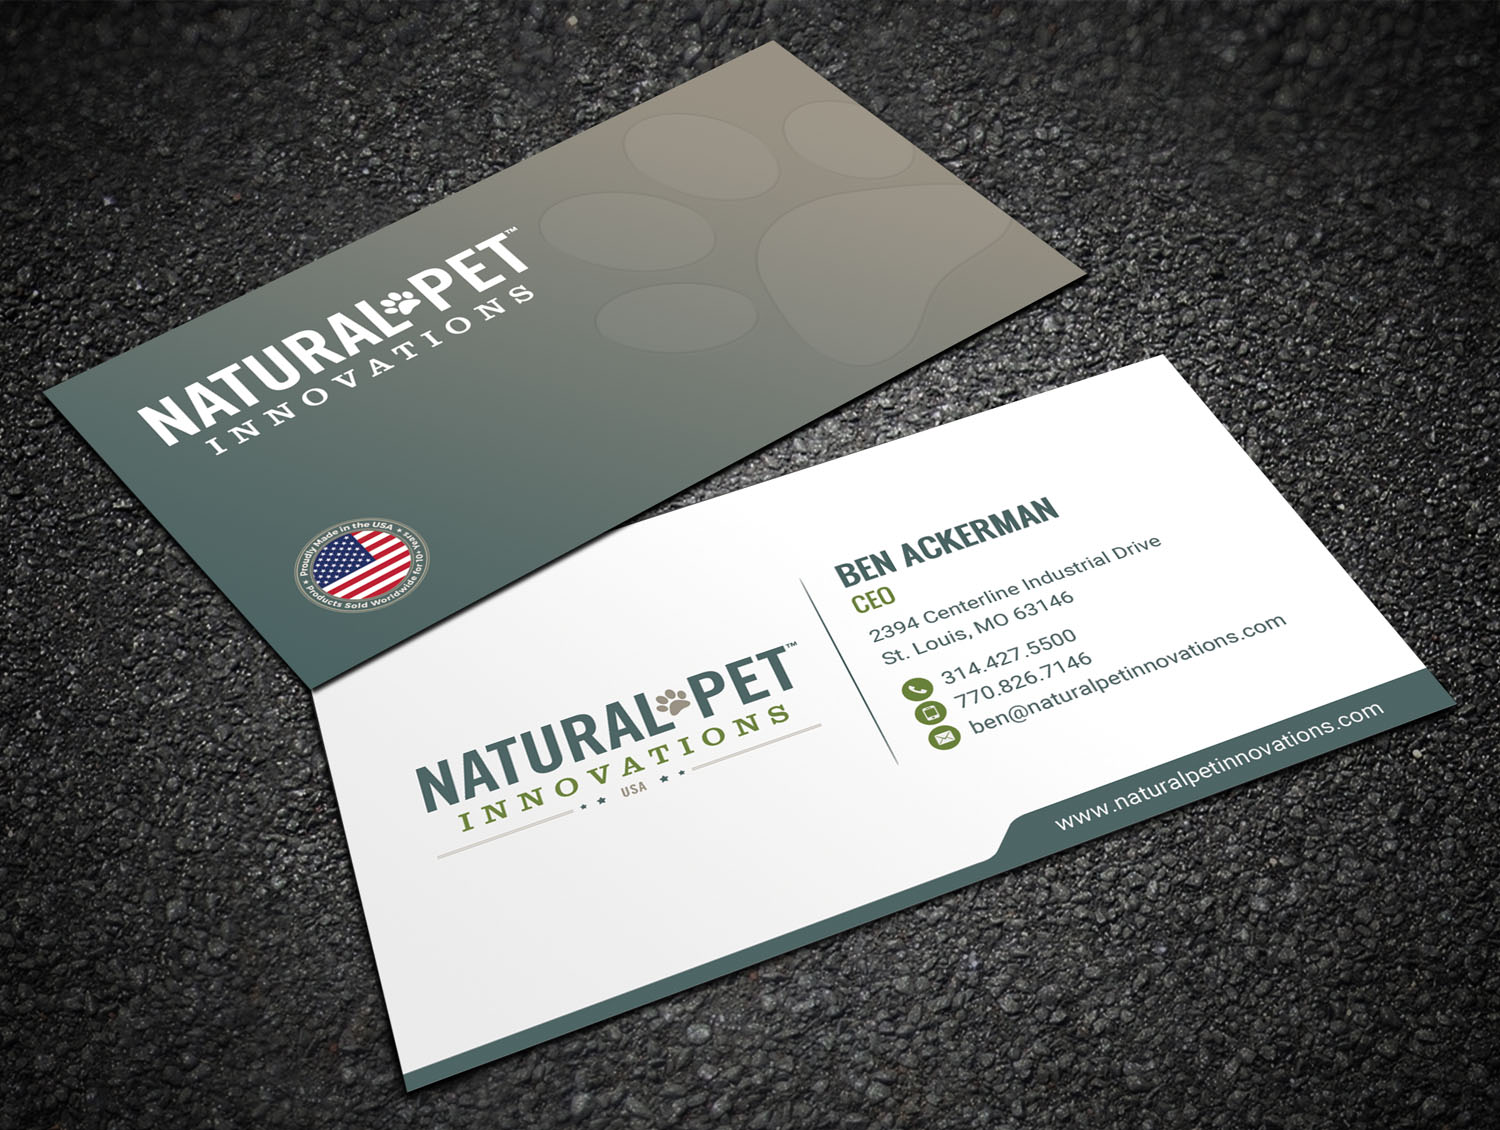 Masculine, Serious, Pet Business Card Design for Natural Pet ...